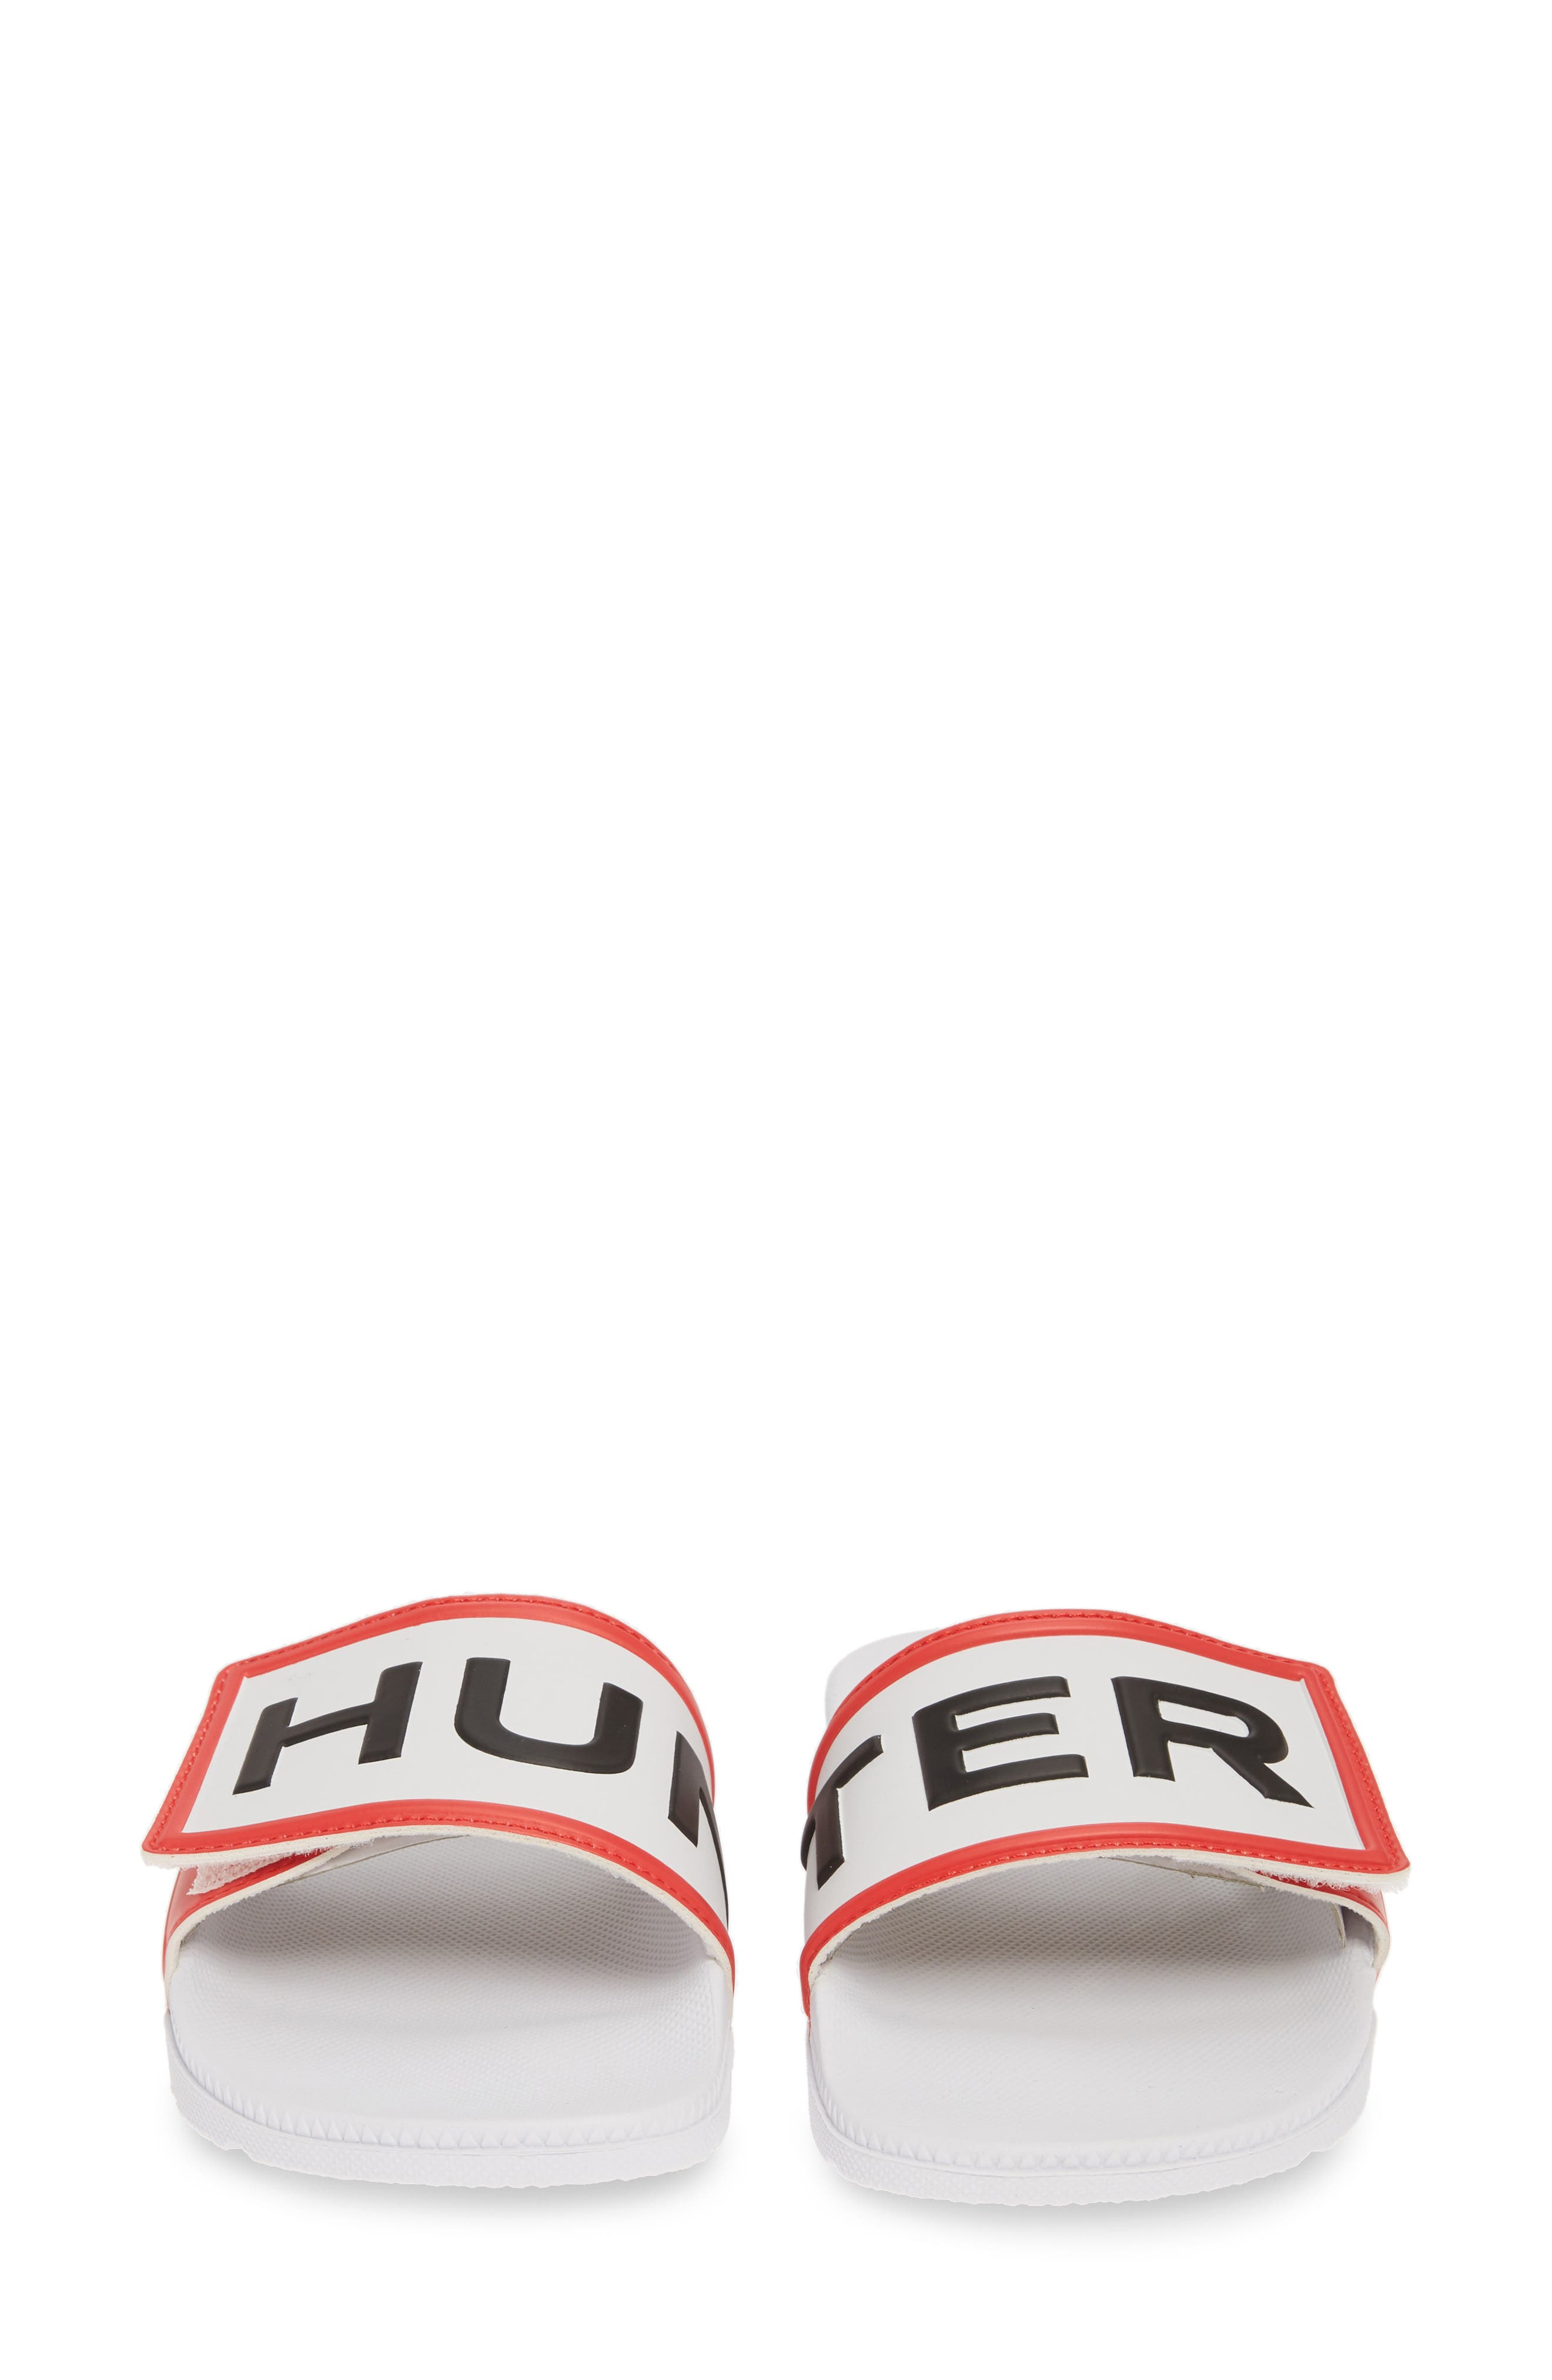 HUNTER,                             Original Adjustable Logo Slide Sandal,                             Alternate thumbnail 5, color,                             WHITE/ WHITE